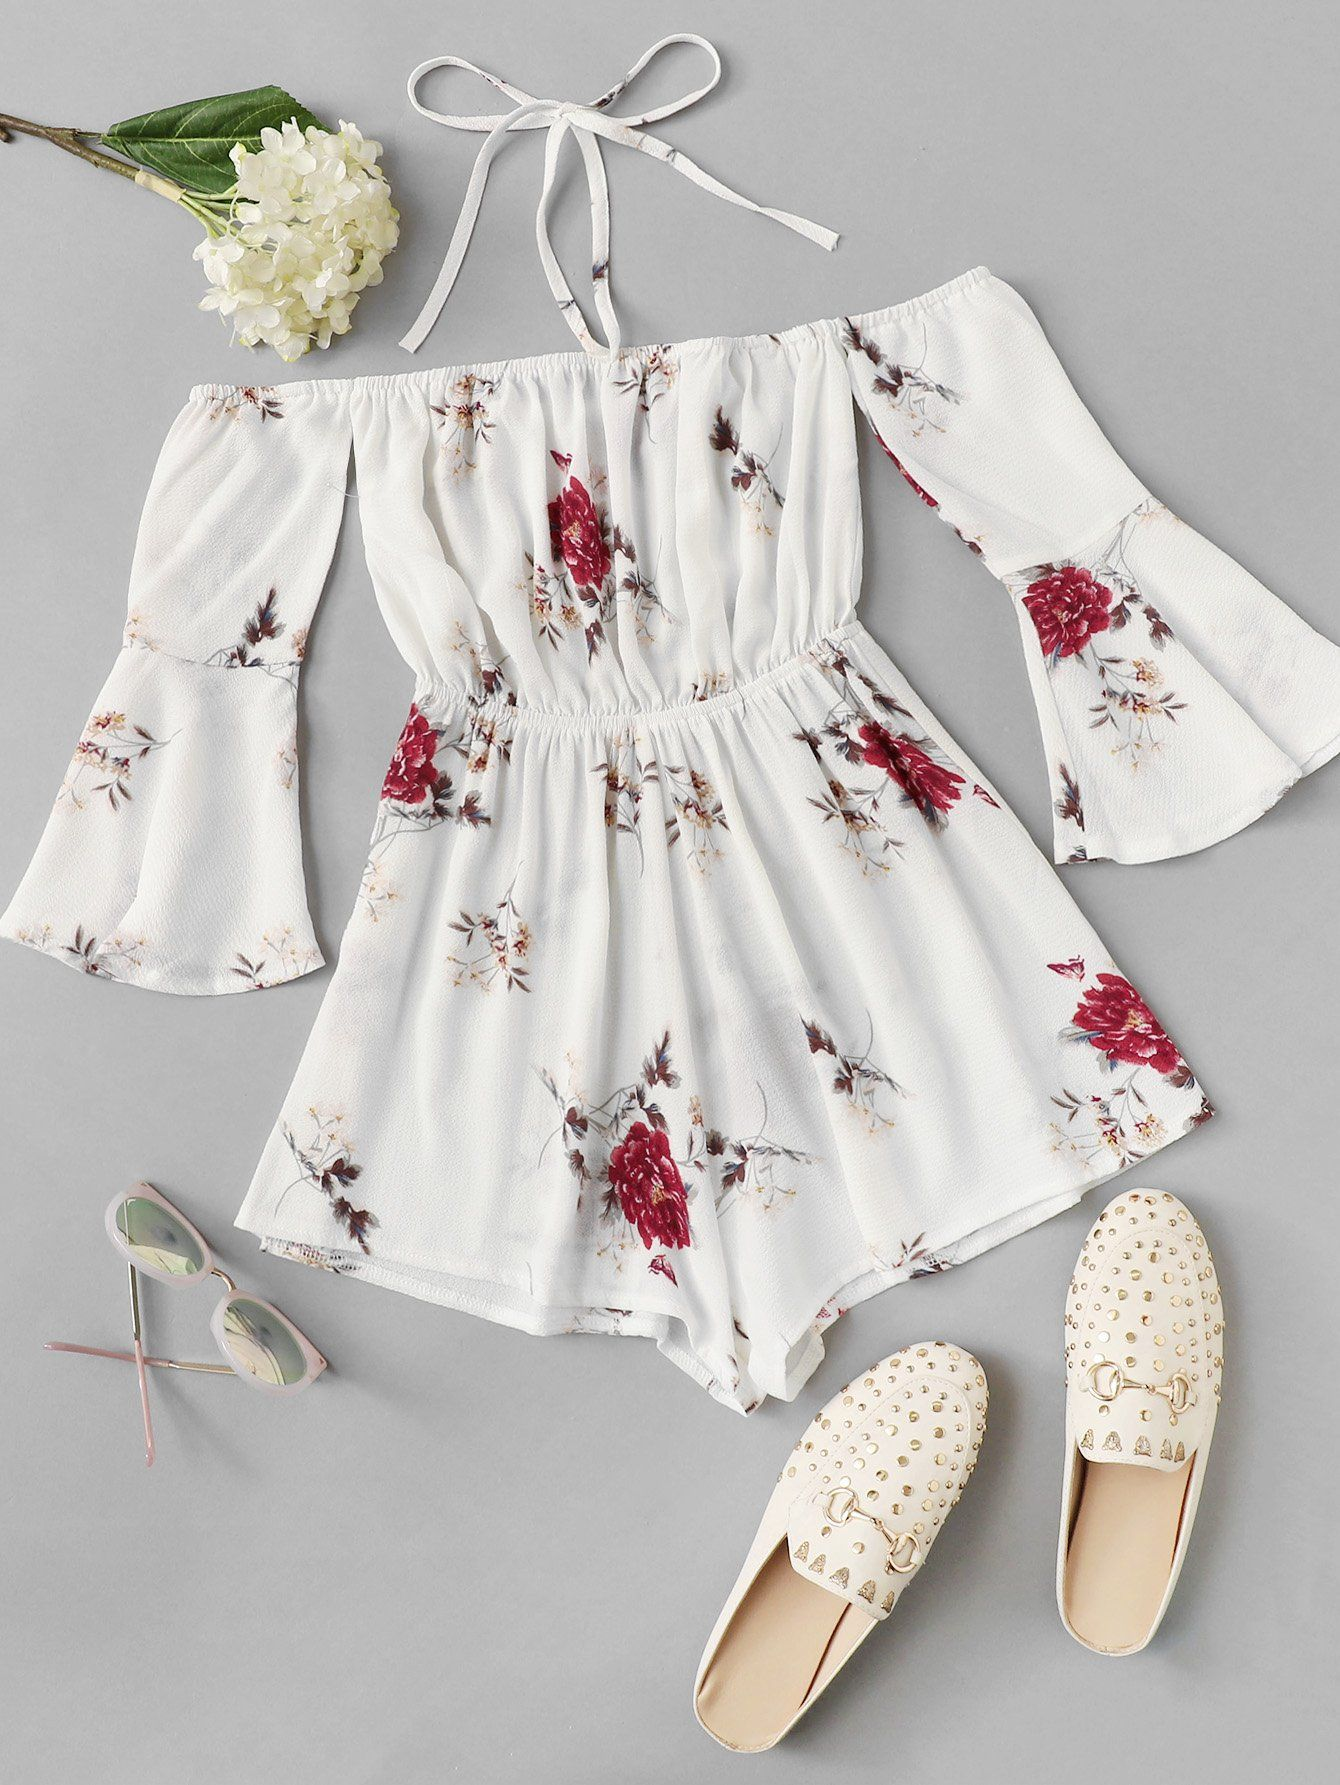 Romwe Girls Clothes